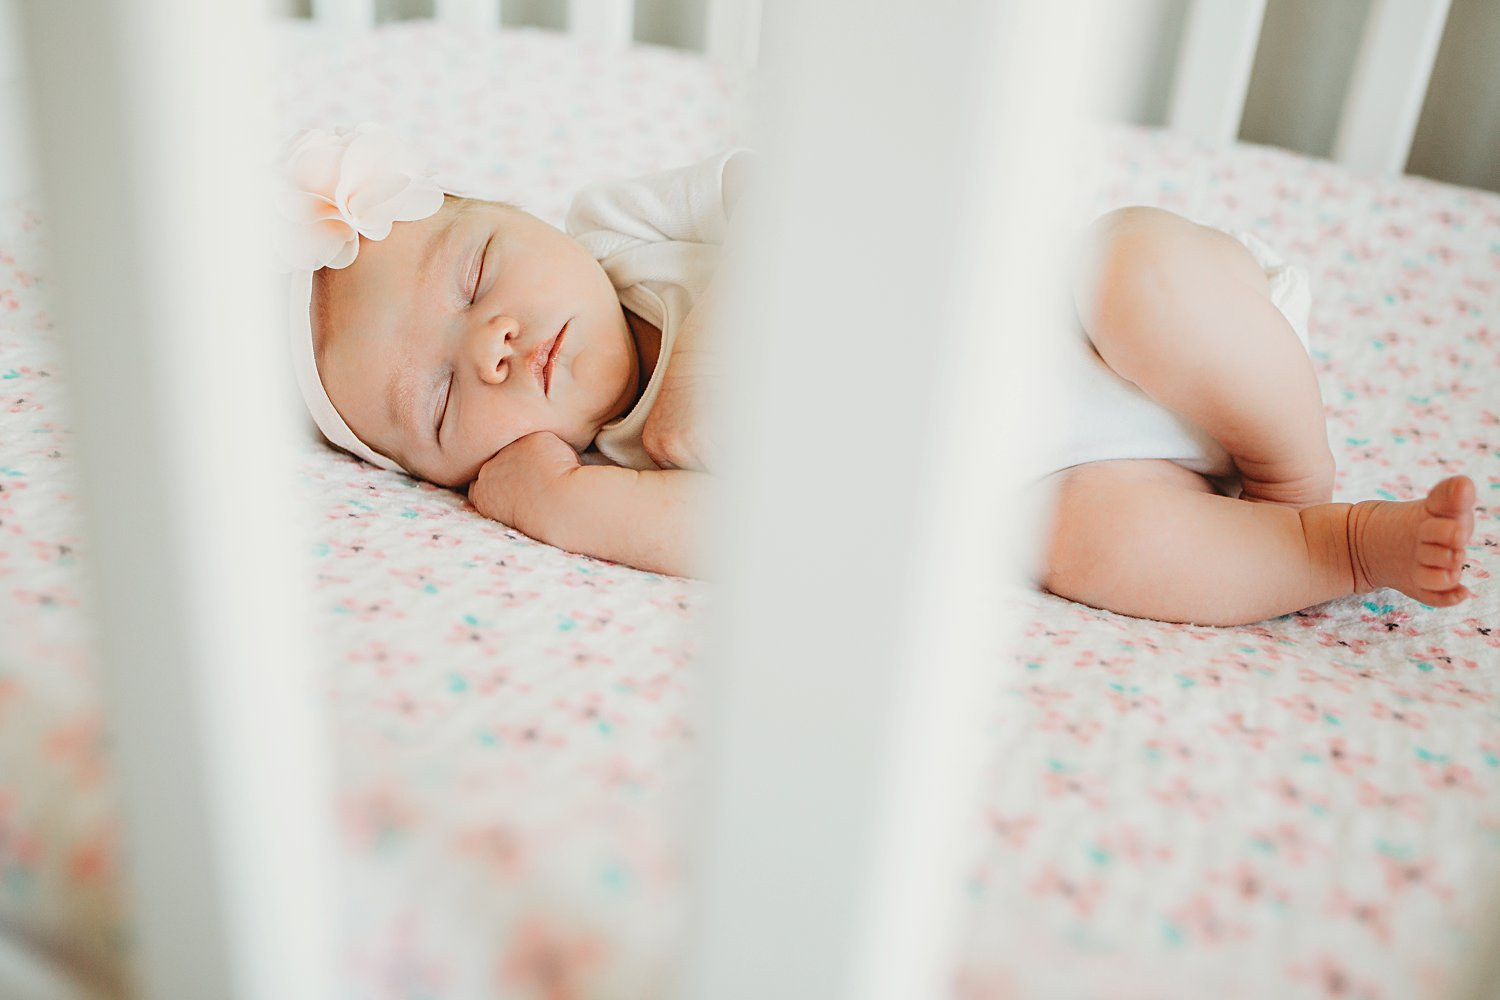 Newborn baby asleep in crib